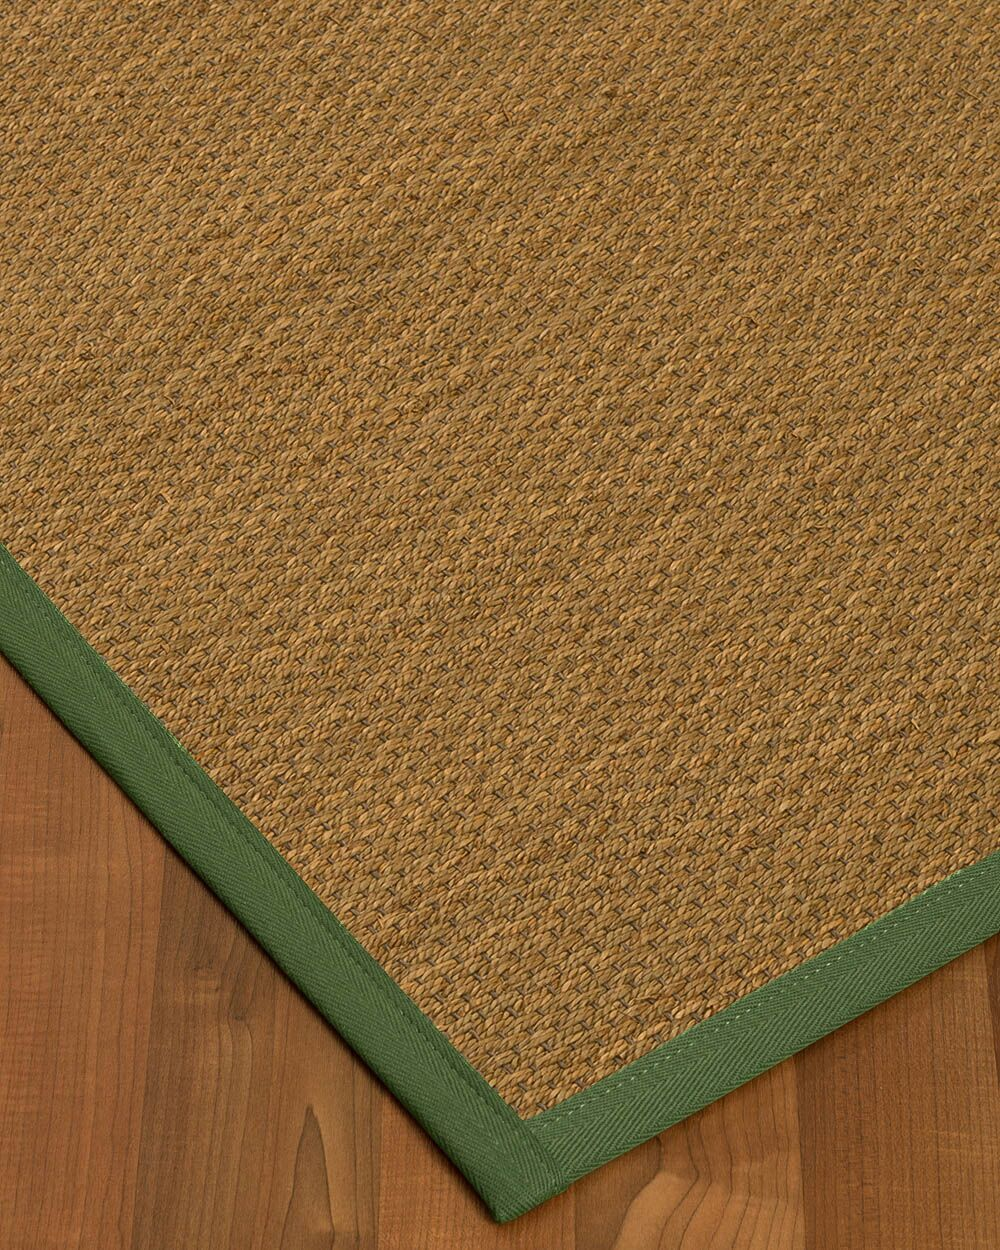 Kennon Border Hand-Woven Brown/Green Area Rug Rug Size: Rectangle 12' x 15', Rug Pad Included: Yes